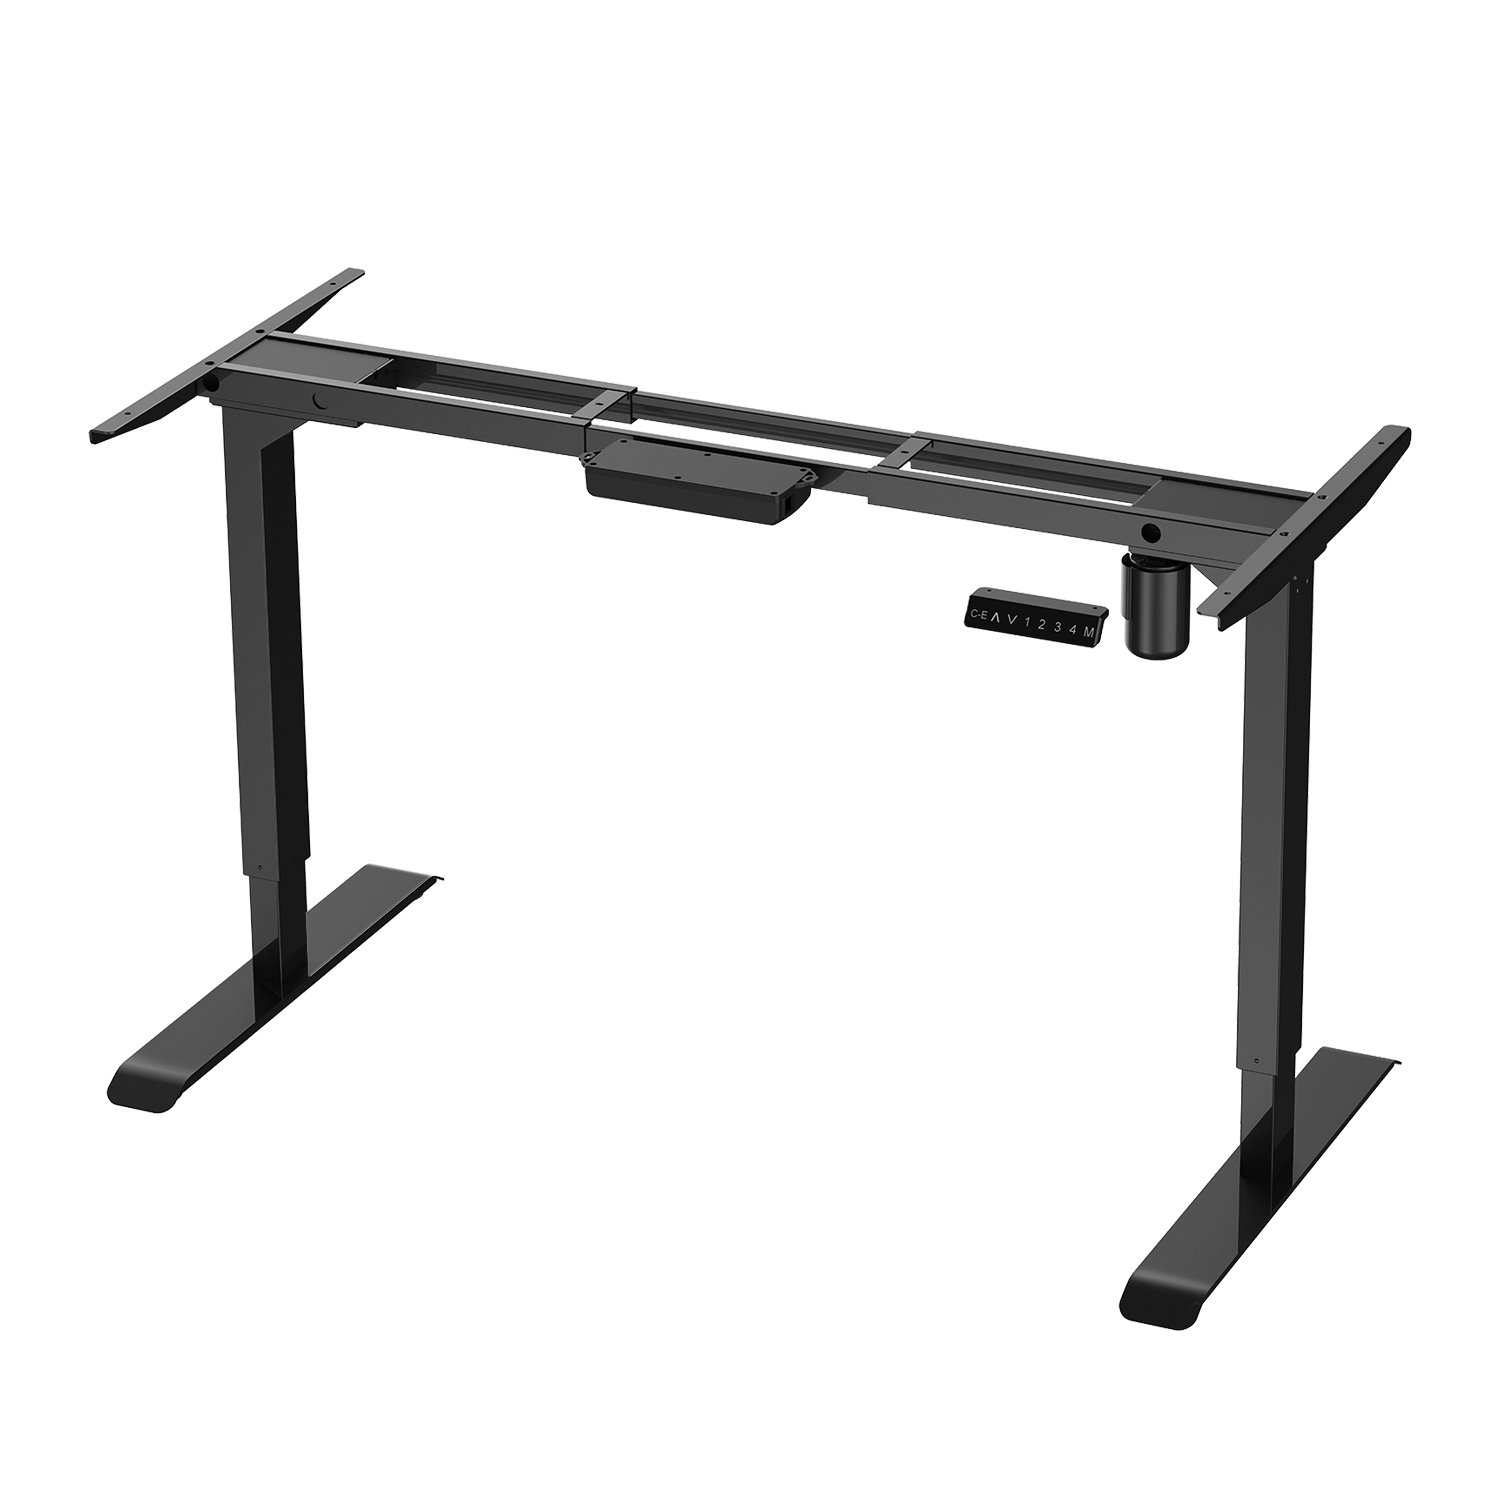 AIMEZO 45'' H Ergonomic Home Office Desk Height Adjustable Standing Desk Electric Desk Frame Sit to Stand Desk w/ 4 Presets 1-Touch by AIMEZO